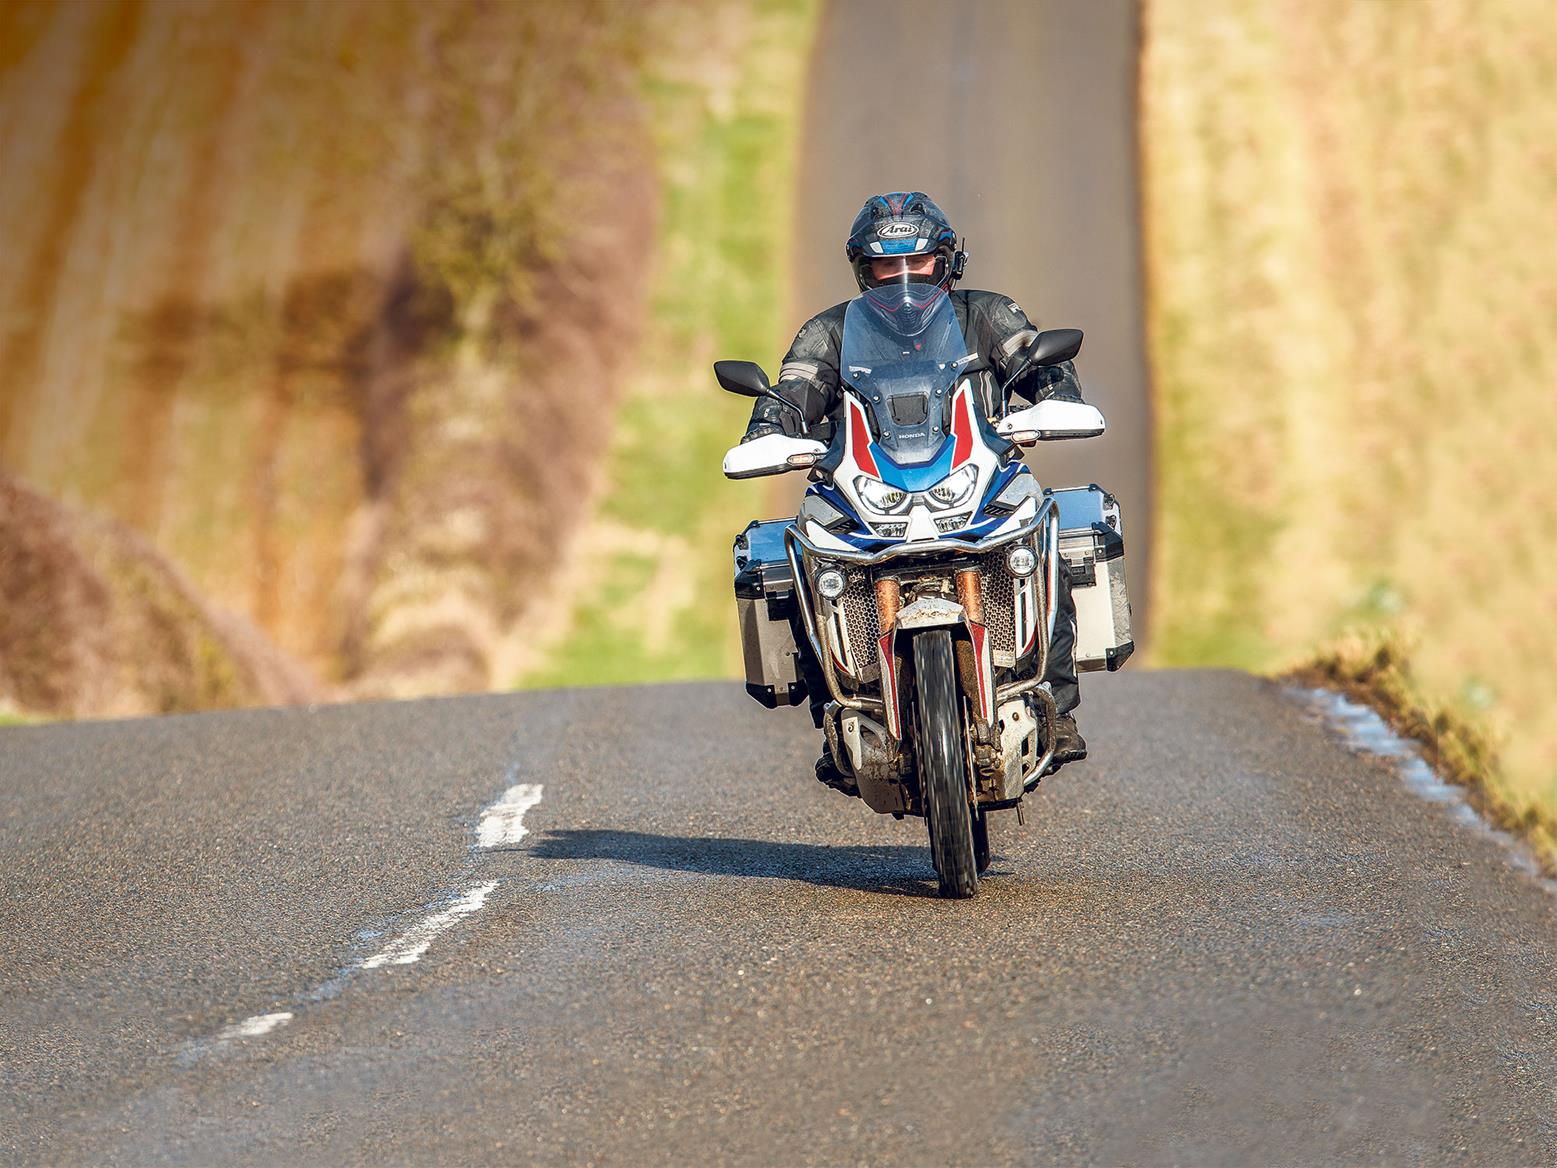 Honda Africa Twin AS ES Plus on the road